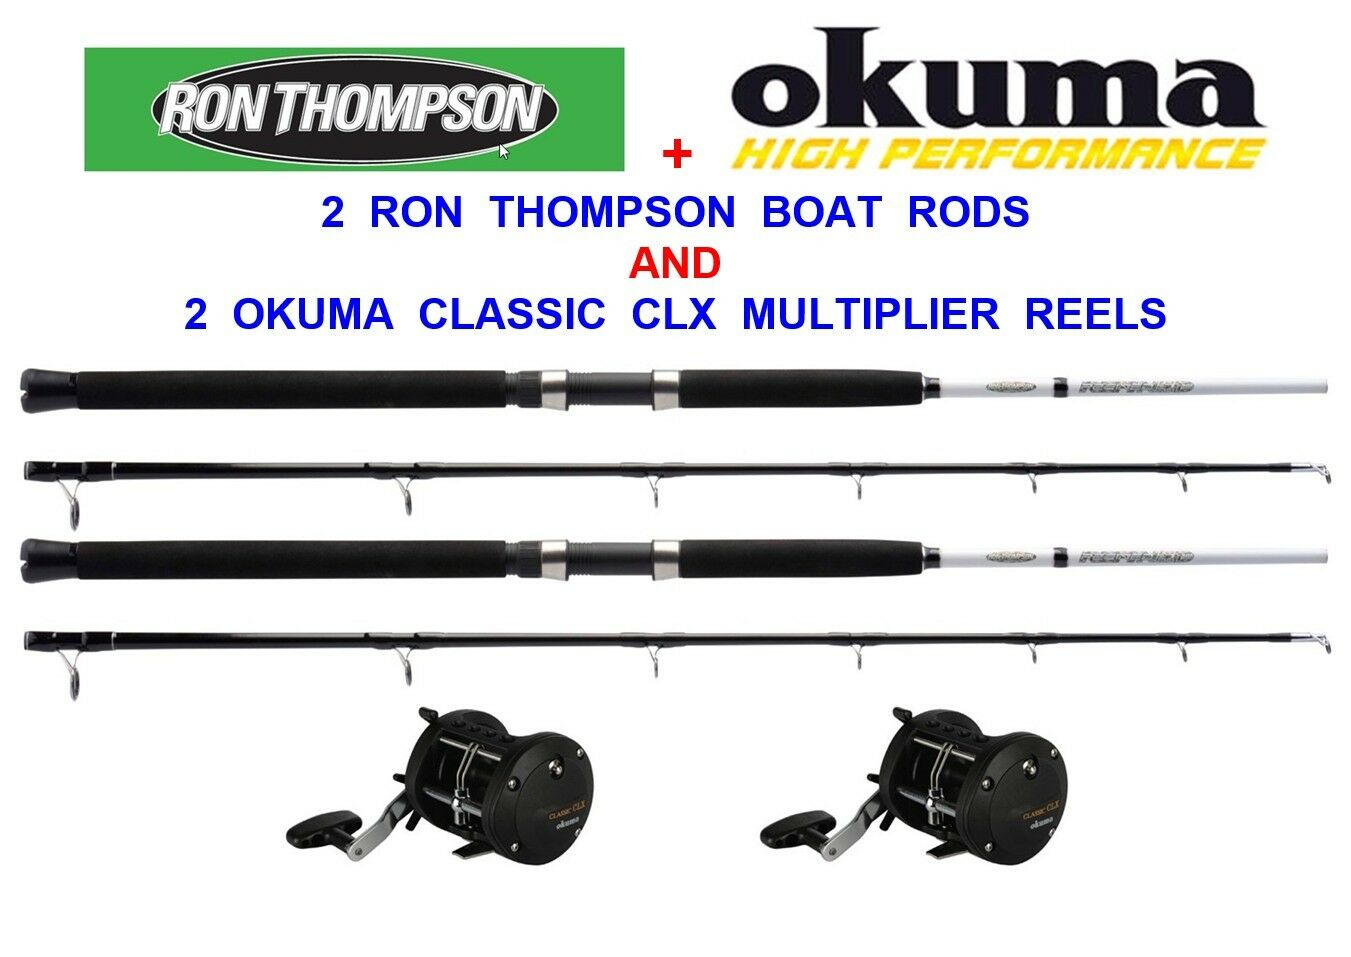 2 RON THOMPSON REFINED 7ft BOAT RODS+2 OKUMA CLASSIC CLX 450La MULTIPLIER REELS